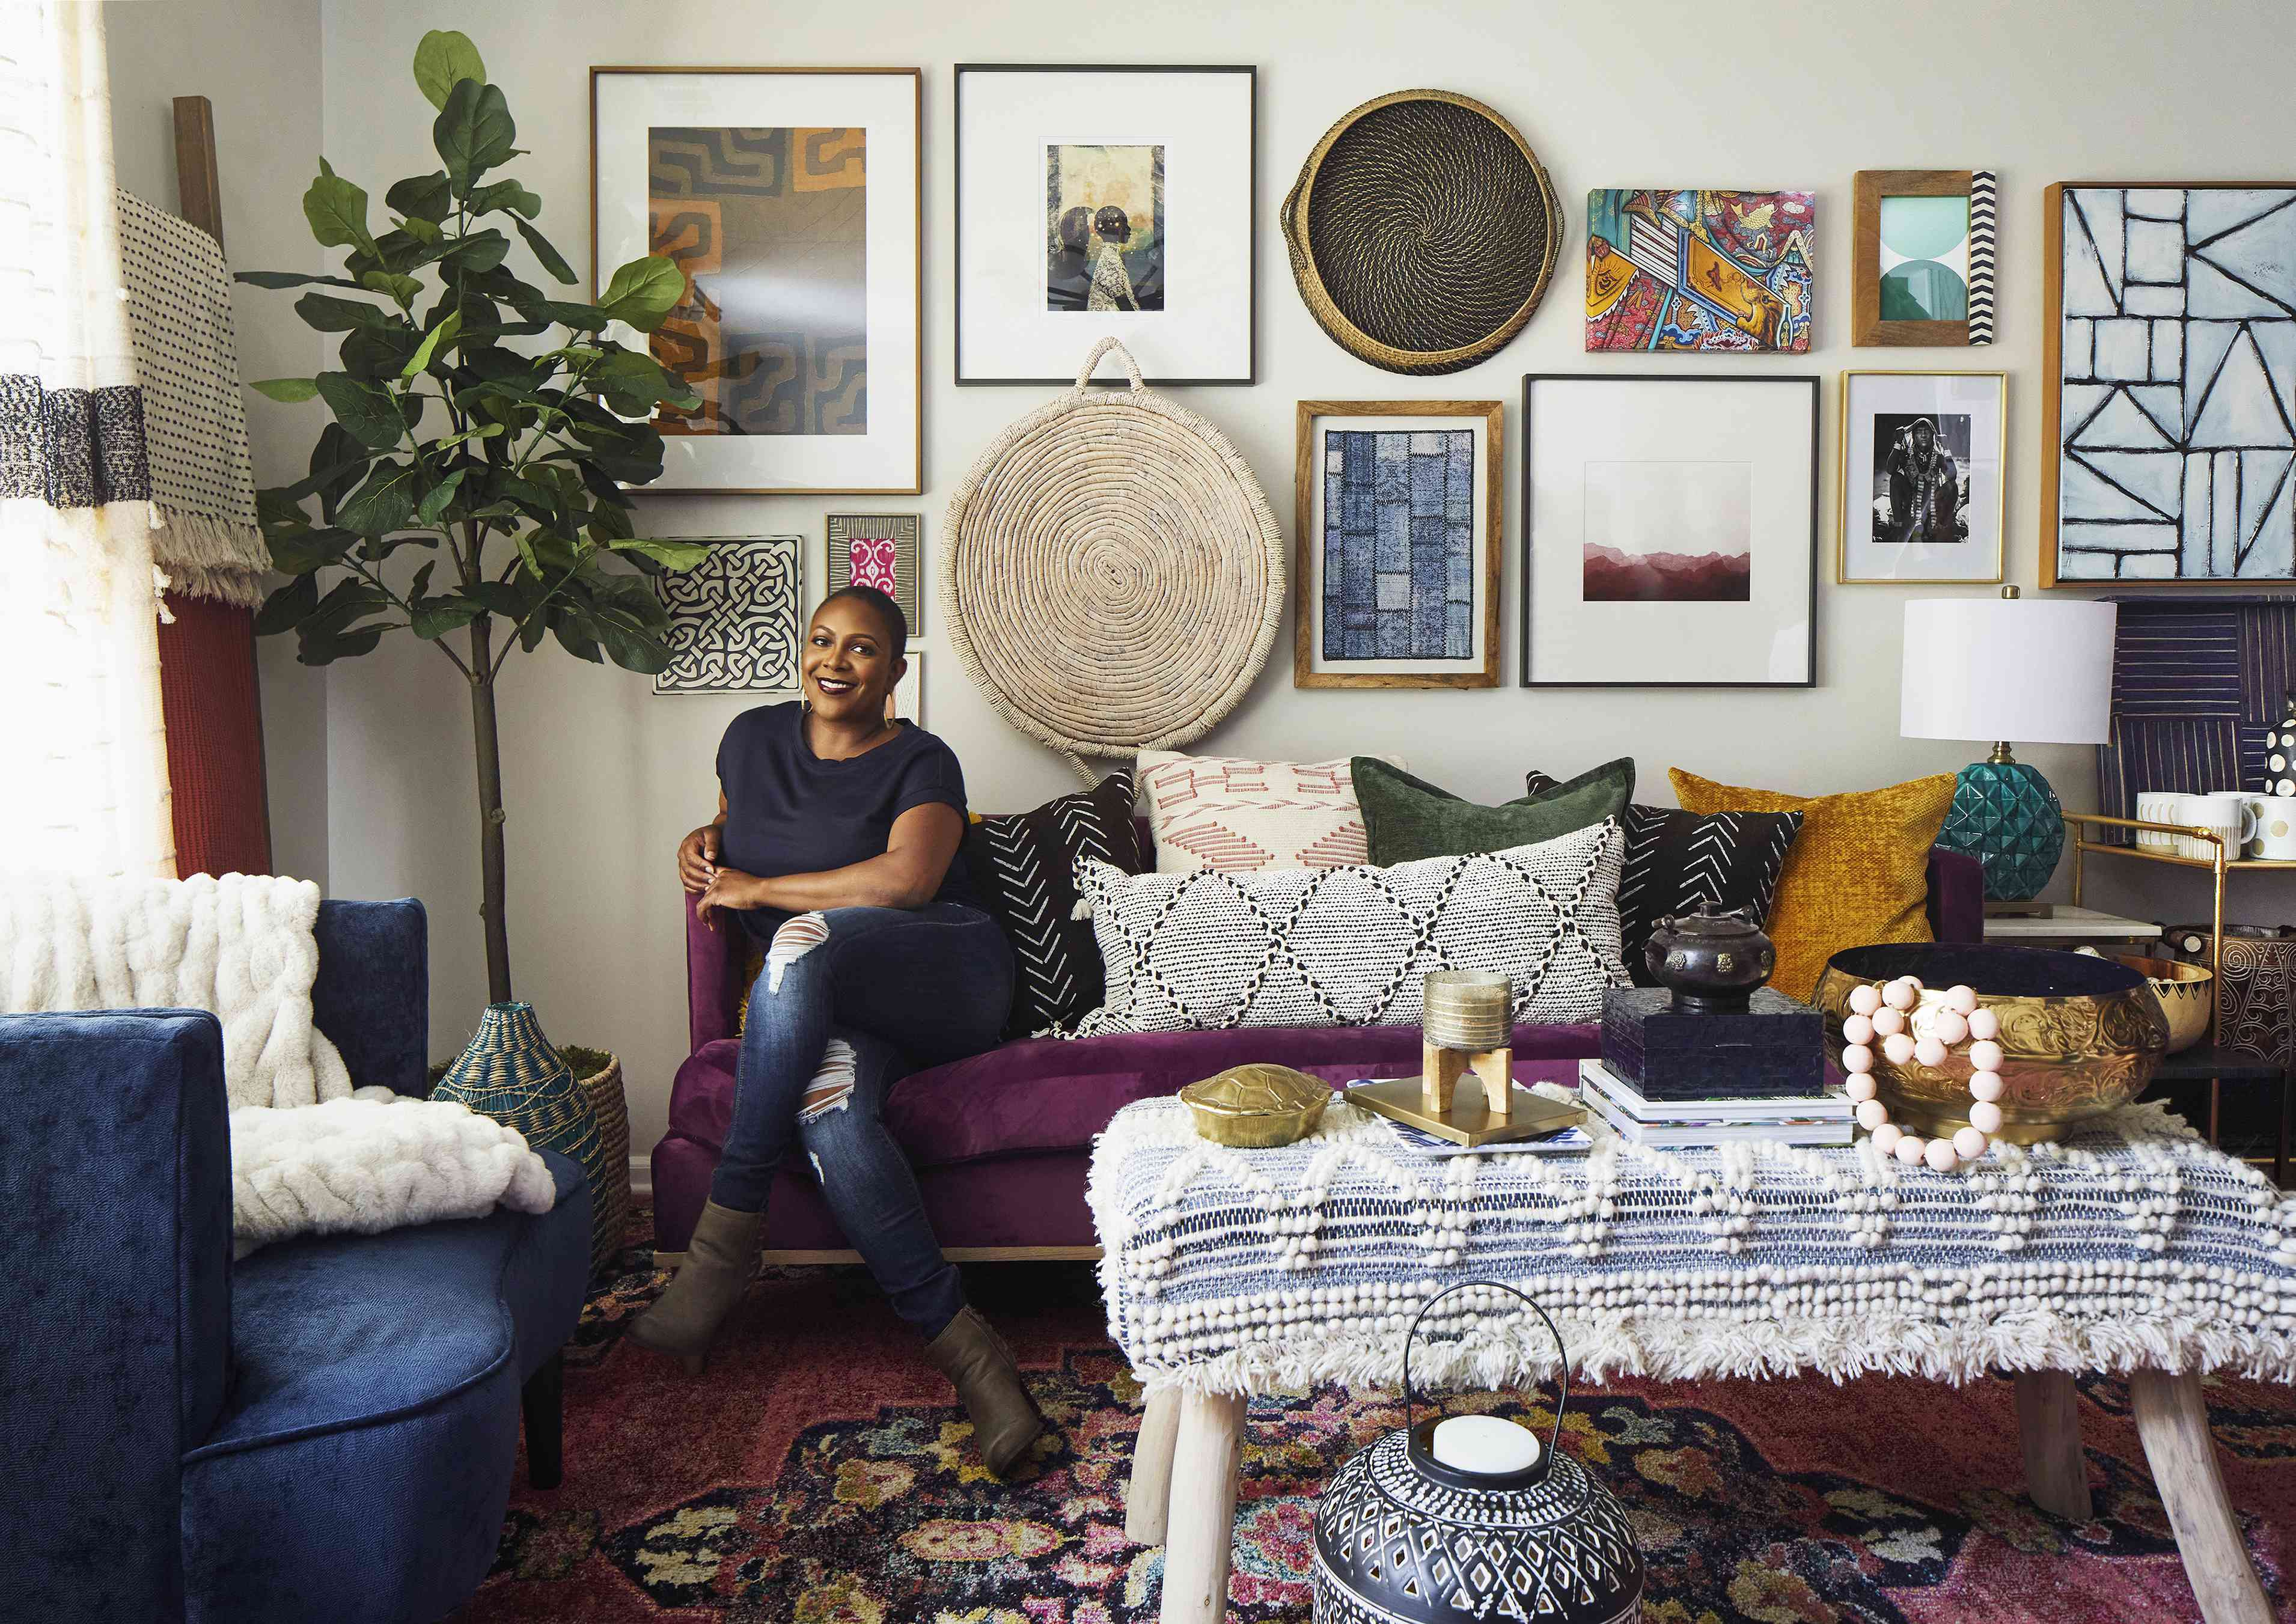 Beth Diana Smith poses on a purple couch in a room with boho chic decor